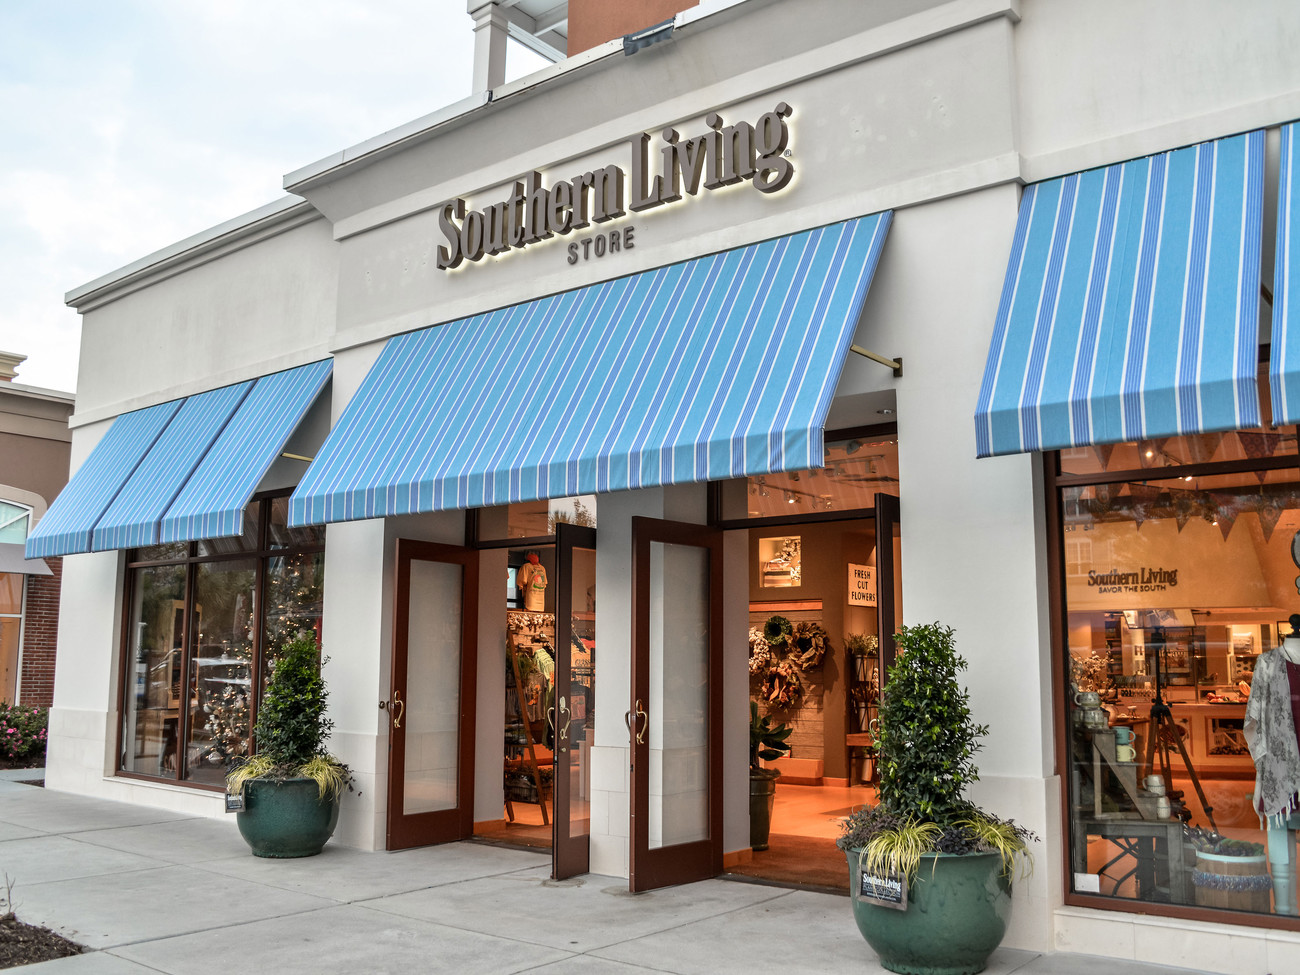 Southern Living Store South Carolina